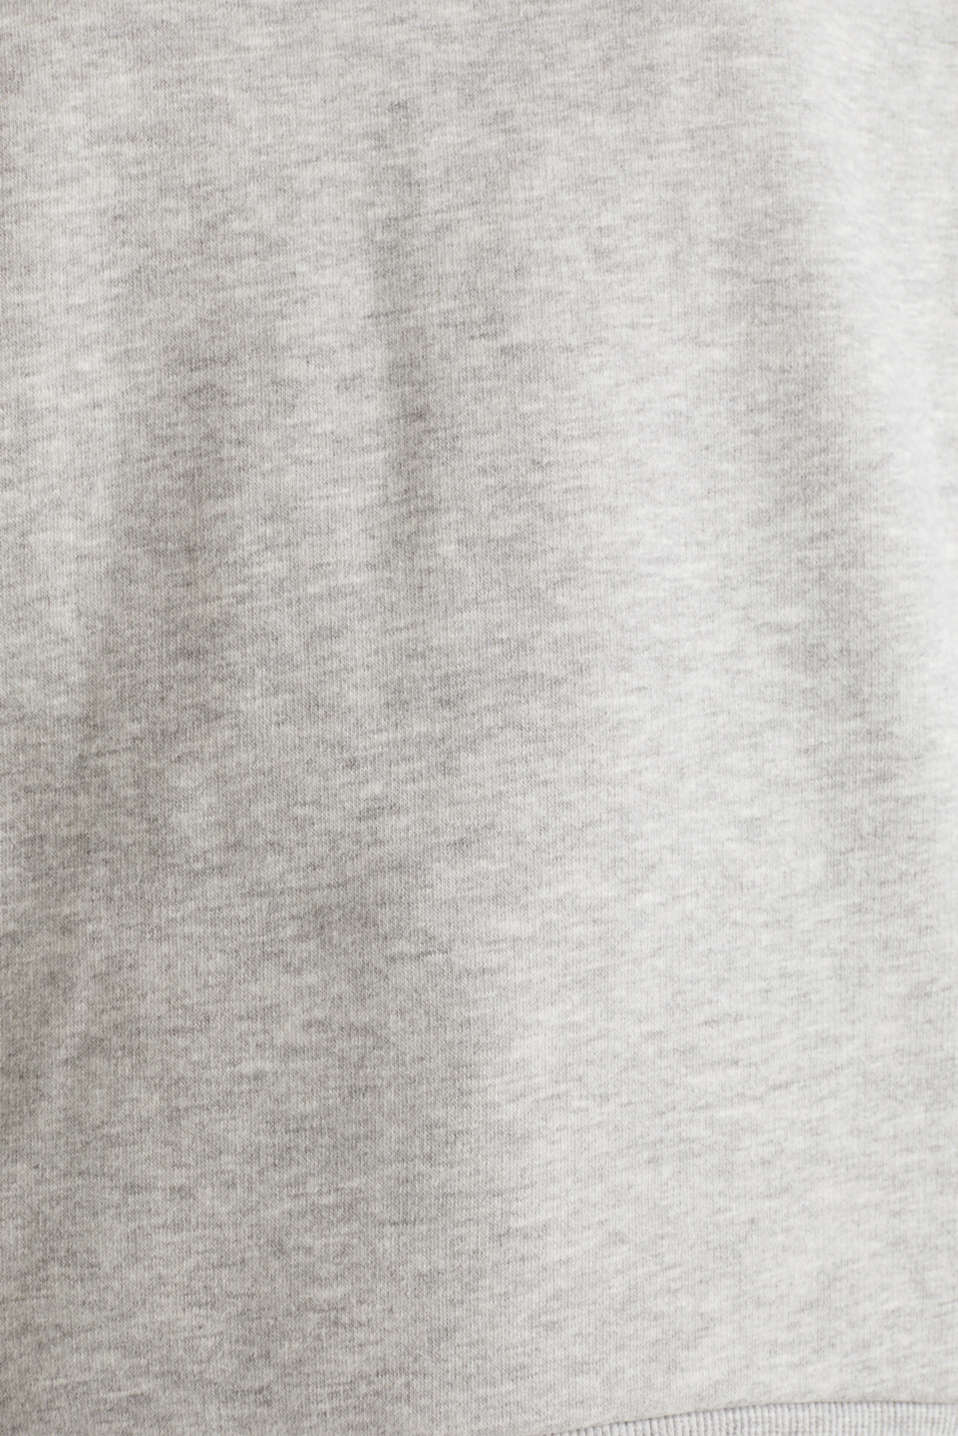 Oversized melange sweatshirt, LIGHT GREY 5, detail image number 3